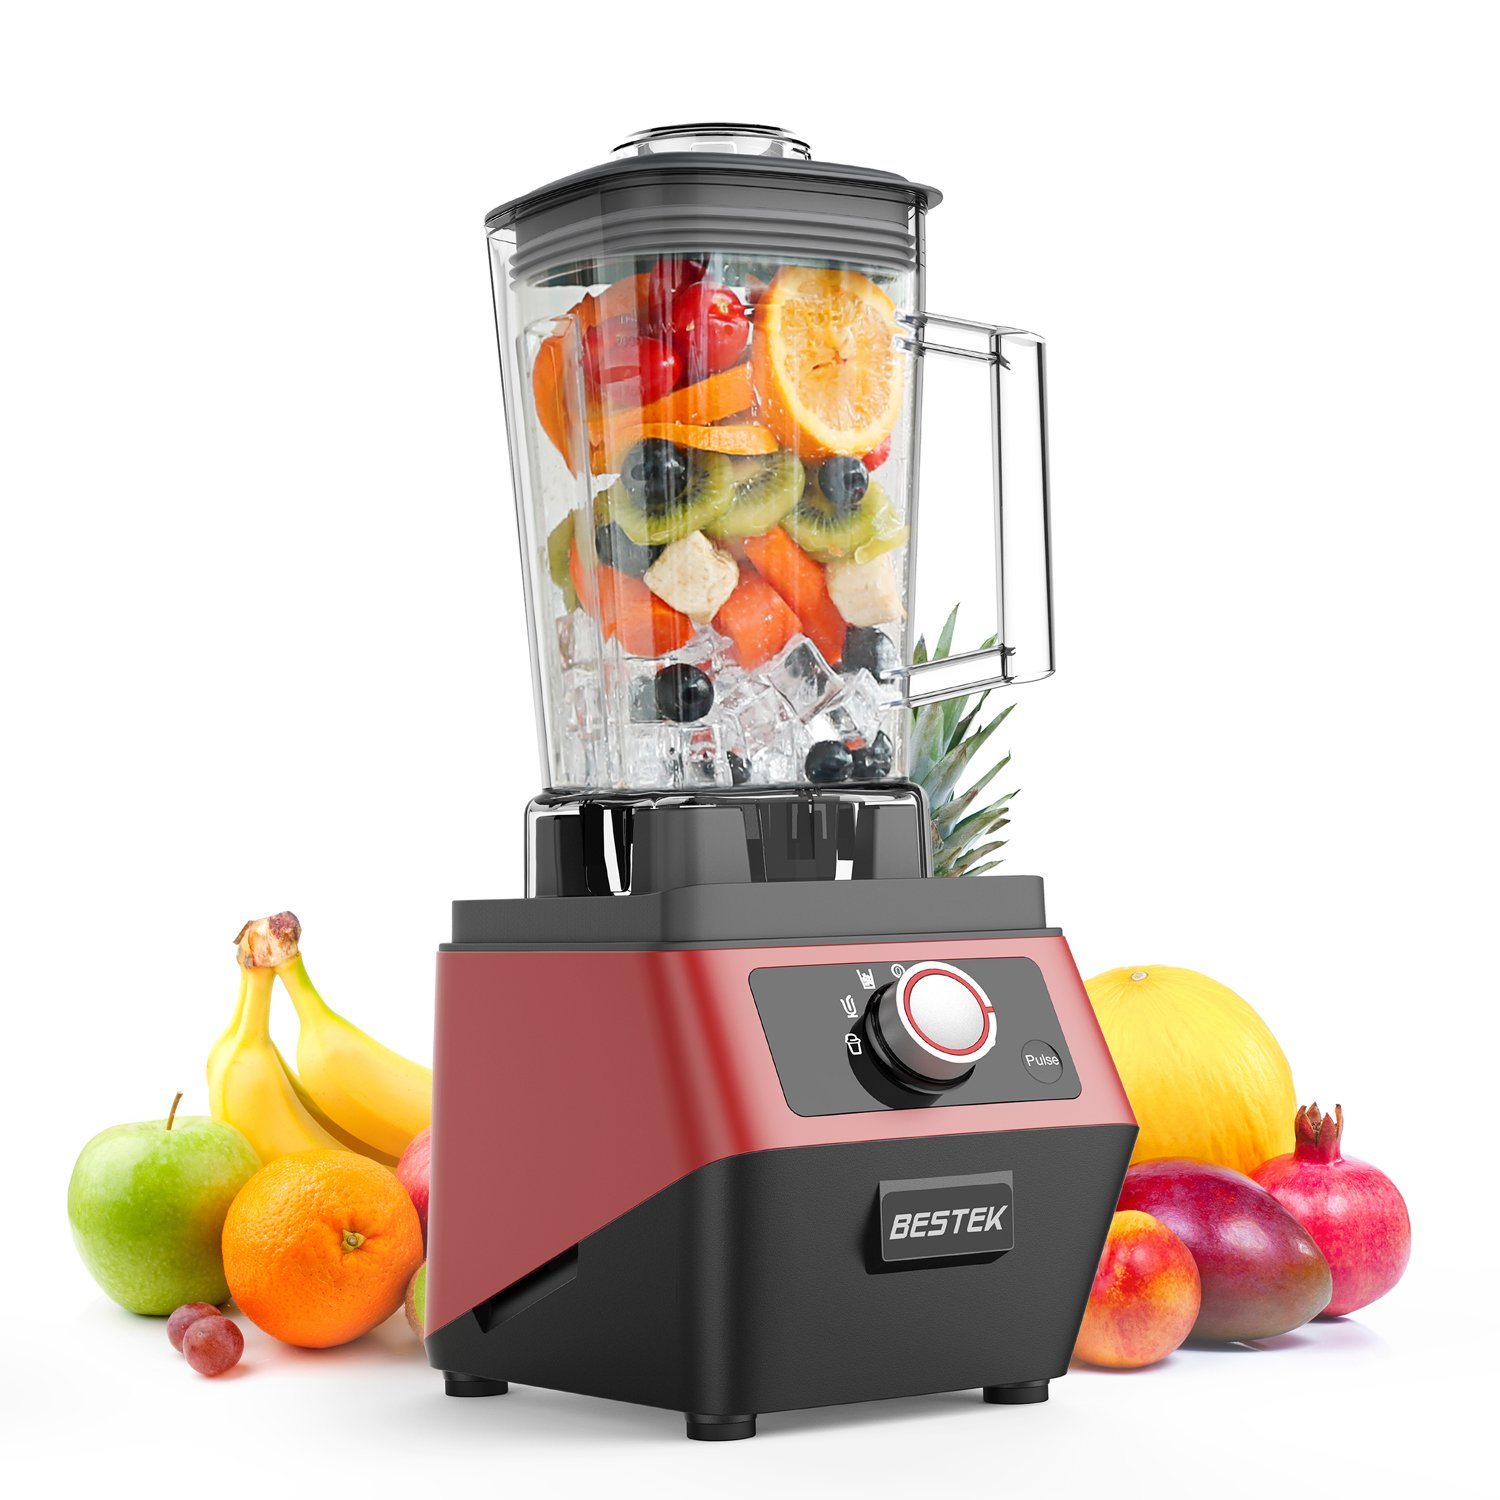 BESTEK 1400W Smoothie Blender,3 Pre-Programmed Settings for Smoothie,Dessert,Ice Crushing,Professional Commercial Blender with 2L BPA-Free Tritan Jar,3-Speed Control and Pulse Function-UL Certified